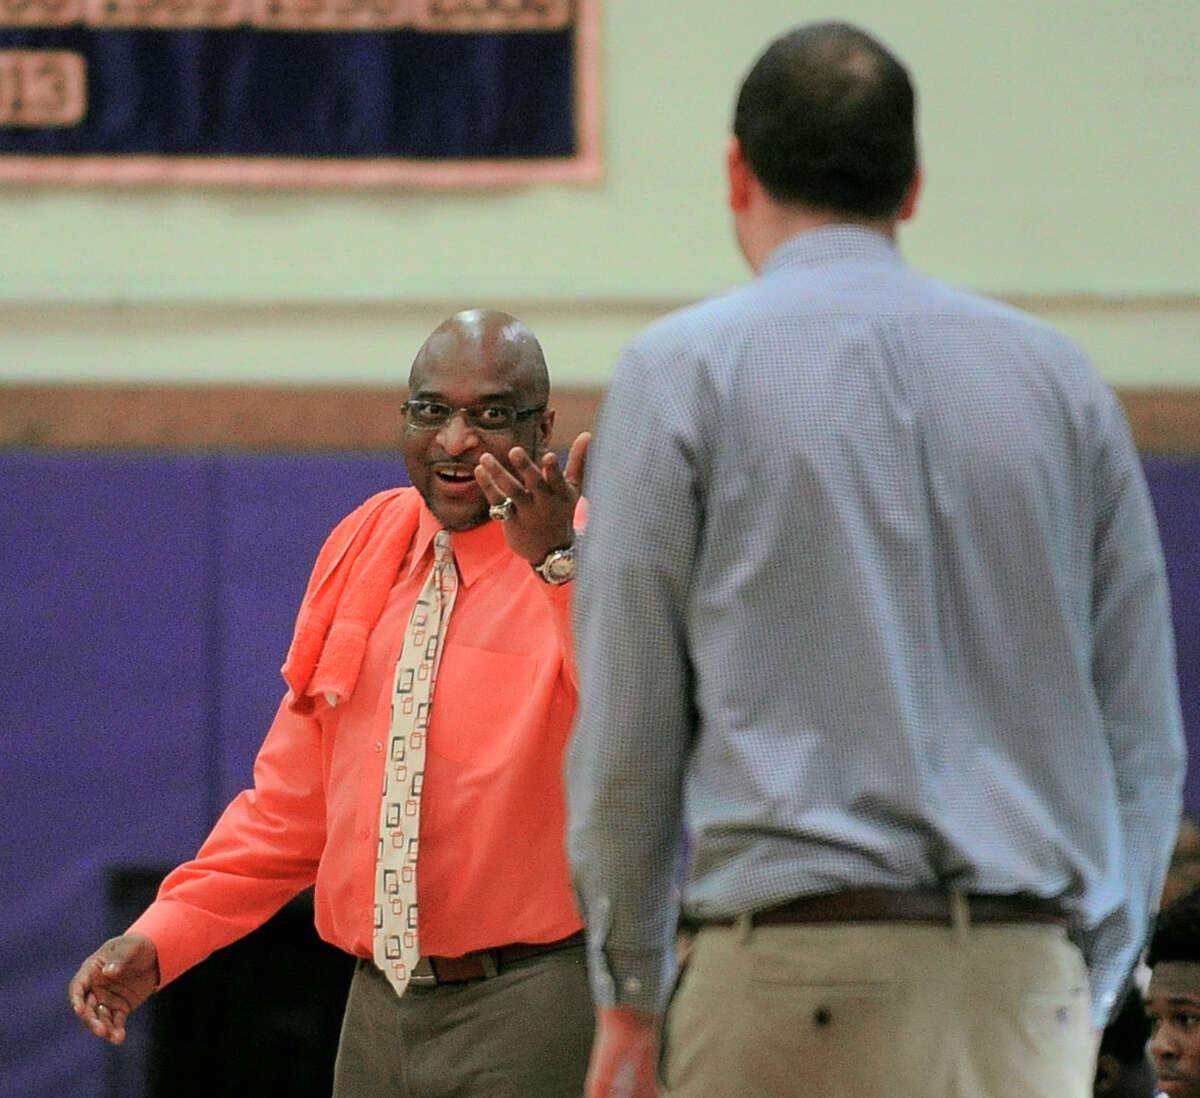 Westhill coach Howard White and Norwalk coach Tom Keyes exchange words in the first half of a FCIAC boys basketball game in Stamford, Conn. on Feb. 16, 2016. Westhill defeated Norwalk 55-46.